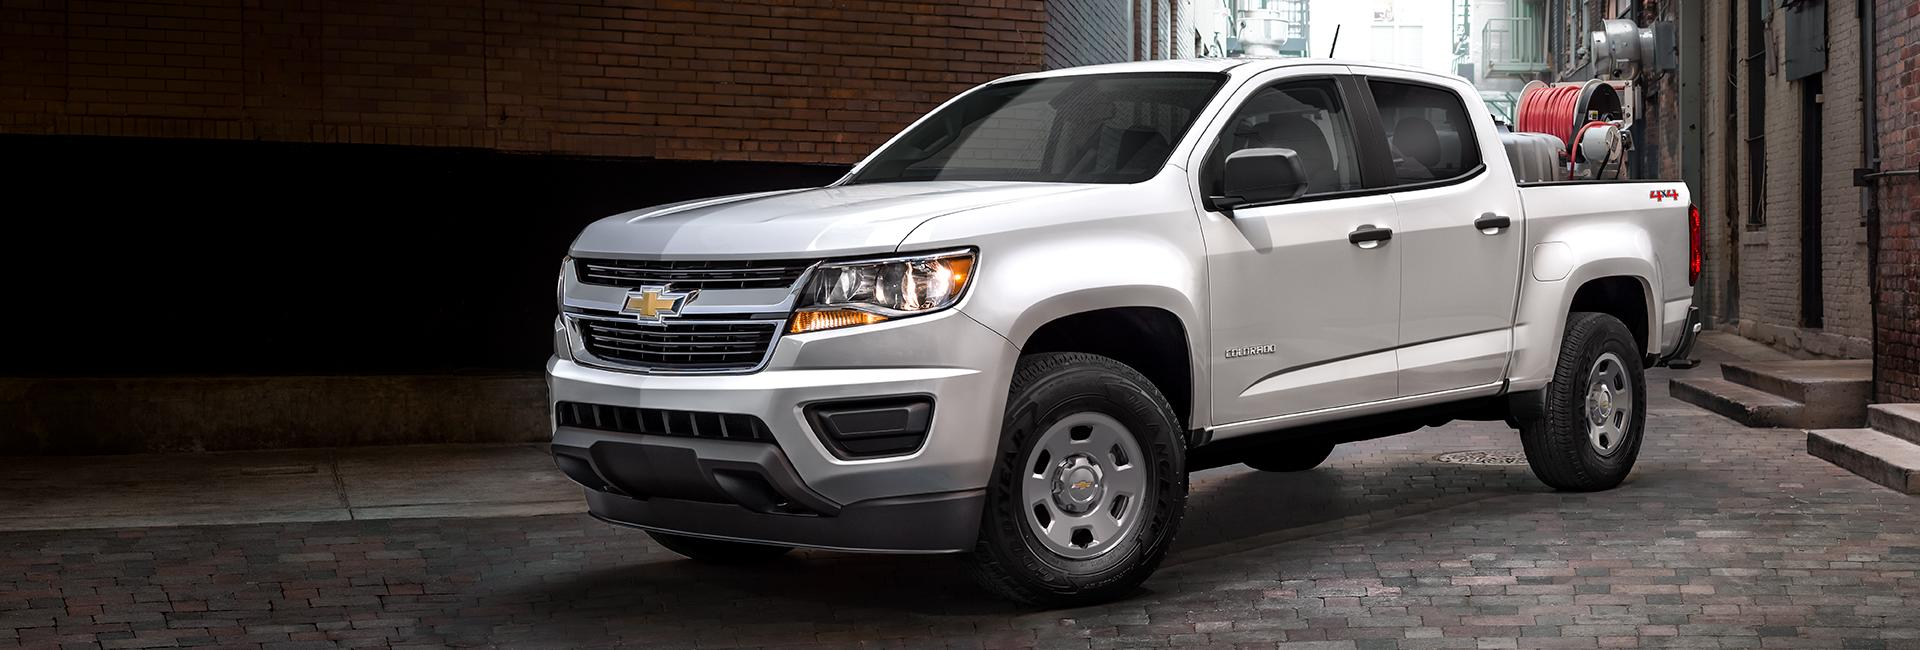 Exterior image of the new Chevy Colorado available at Spitzer Chevy Northfield